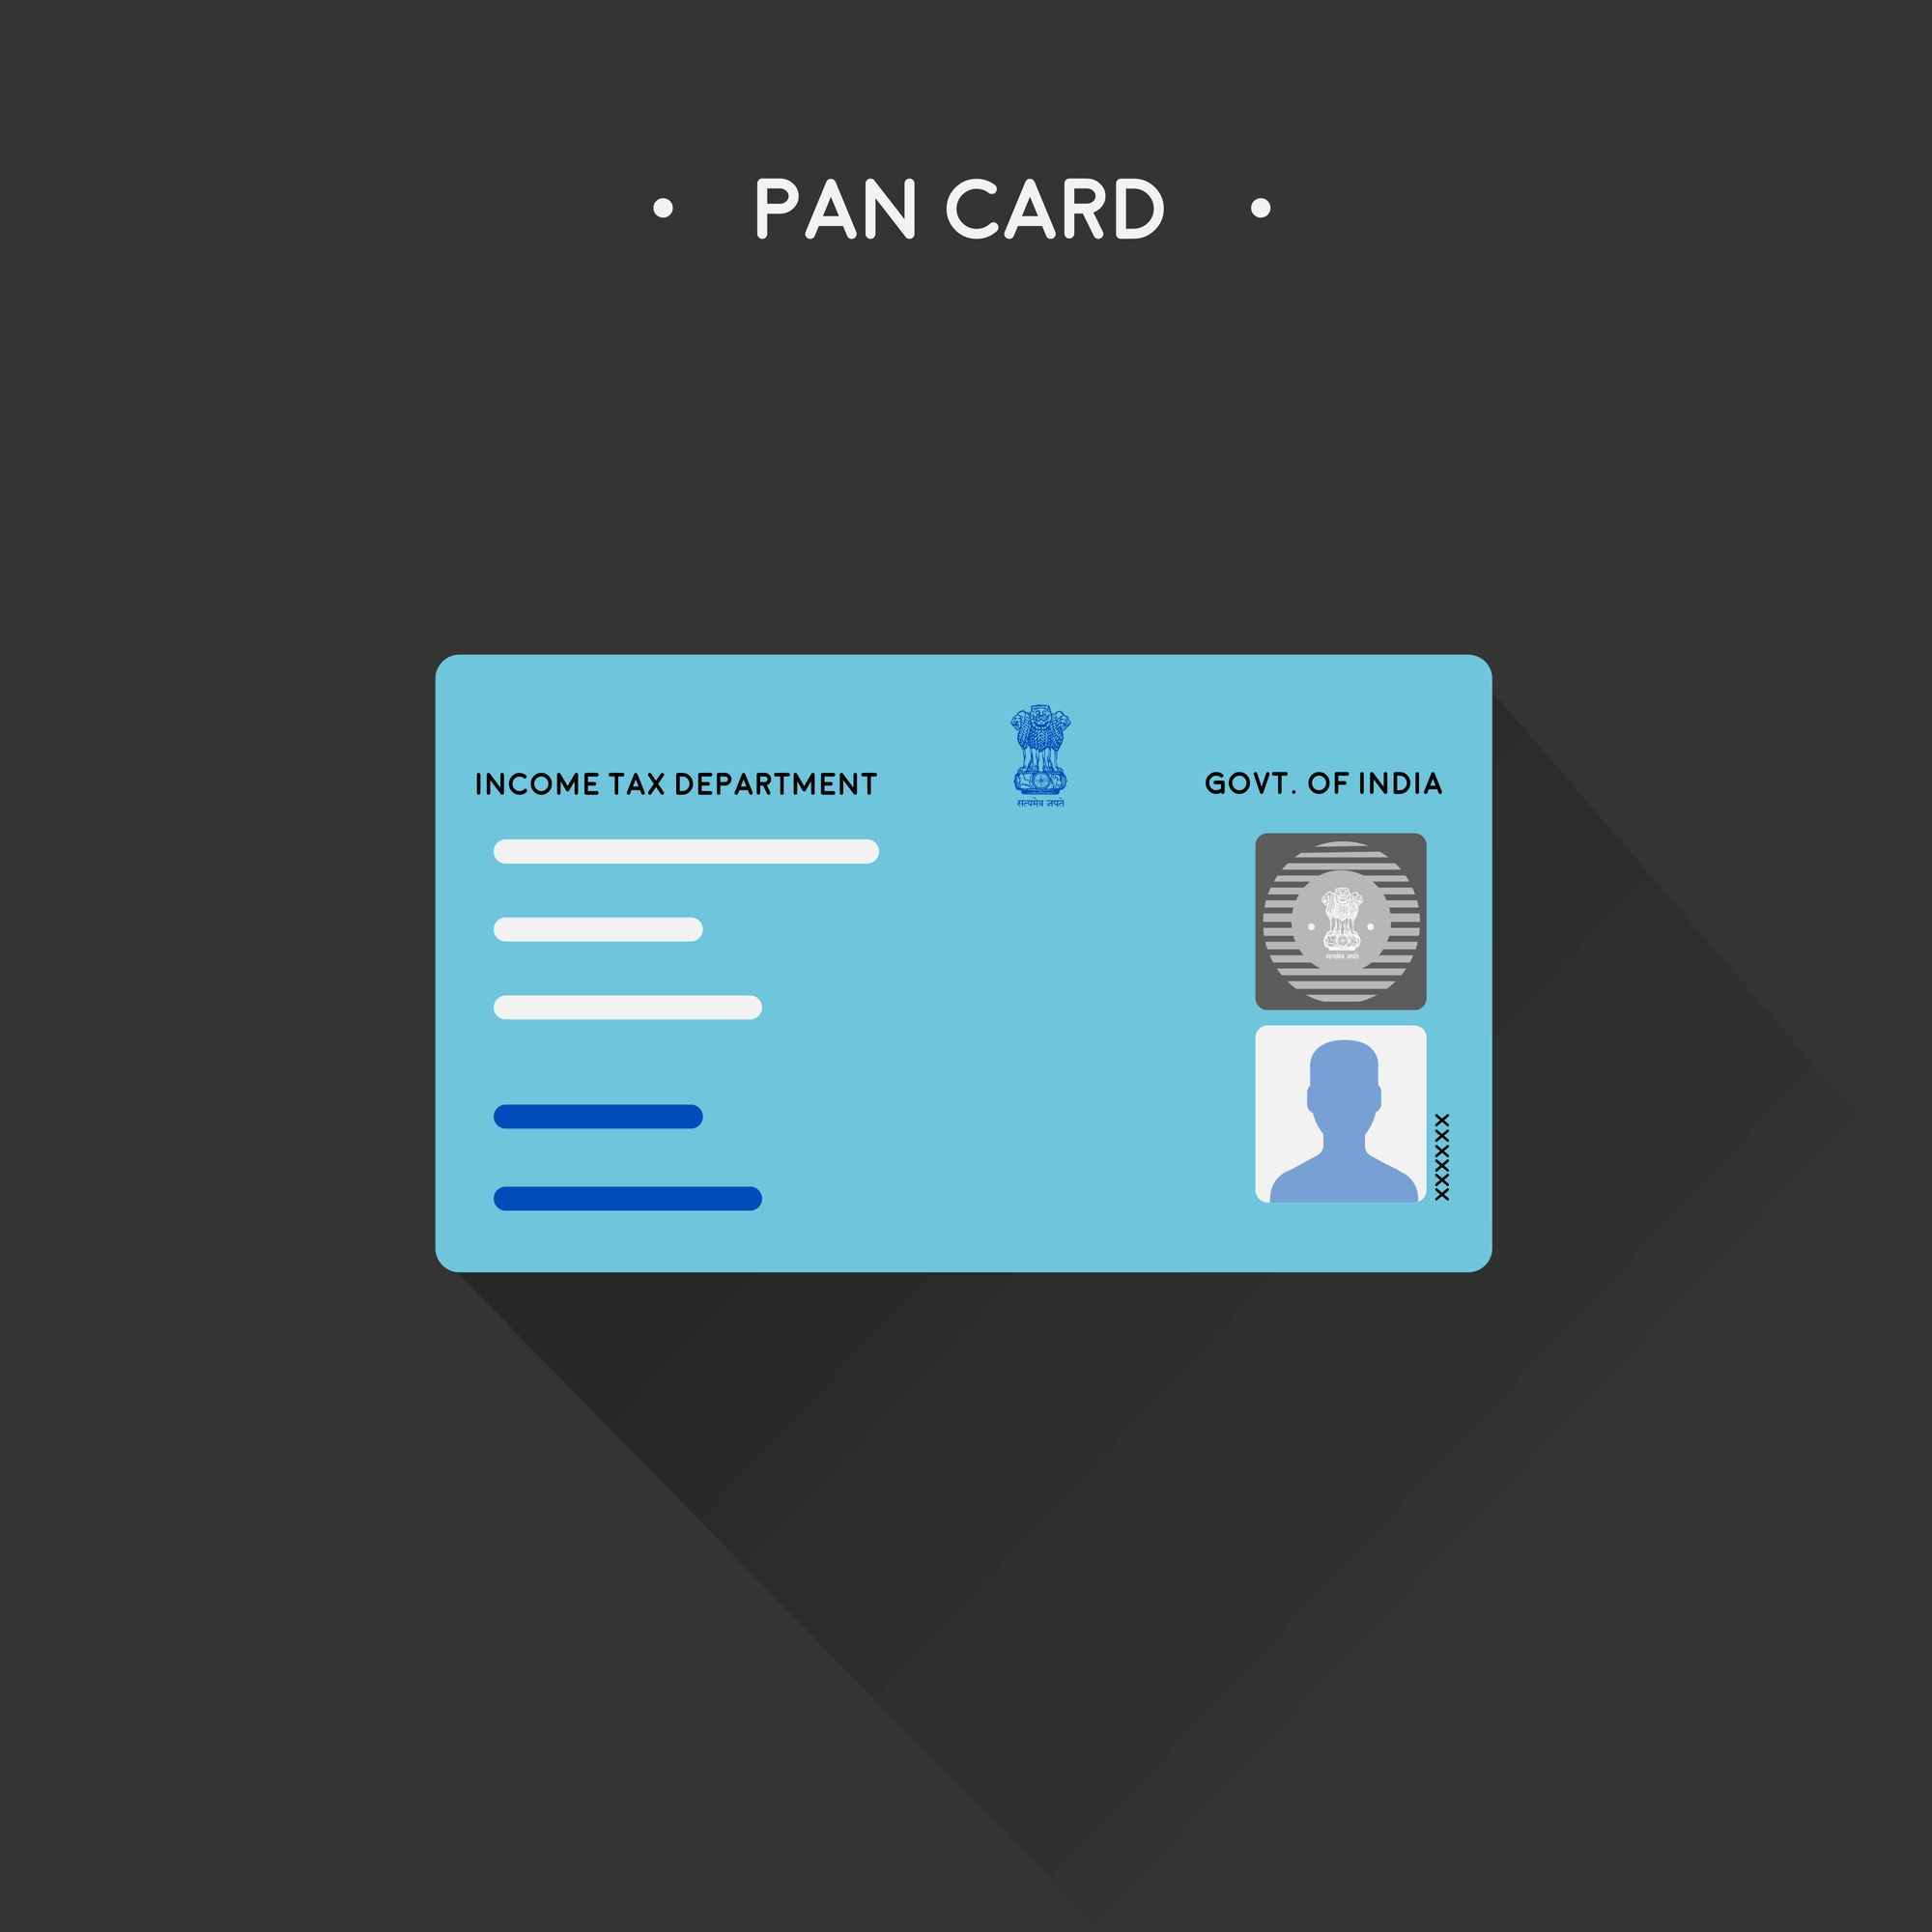 How to Apply for a lost PAN Card?